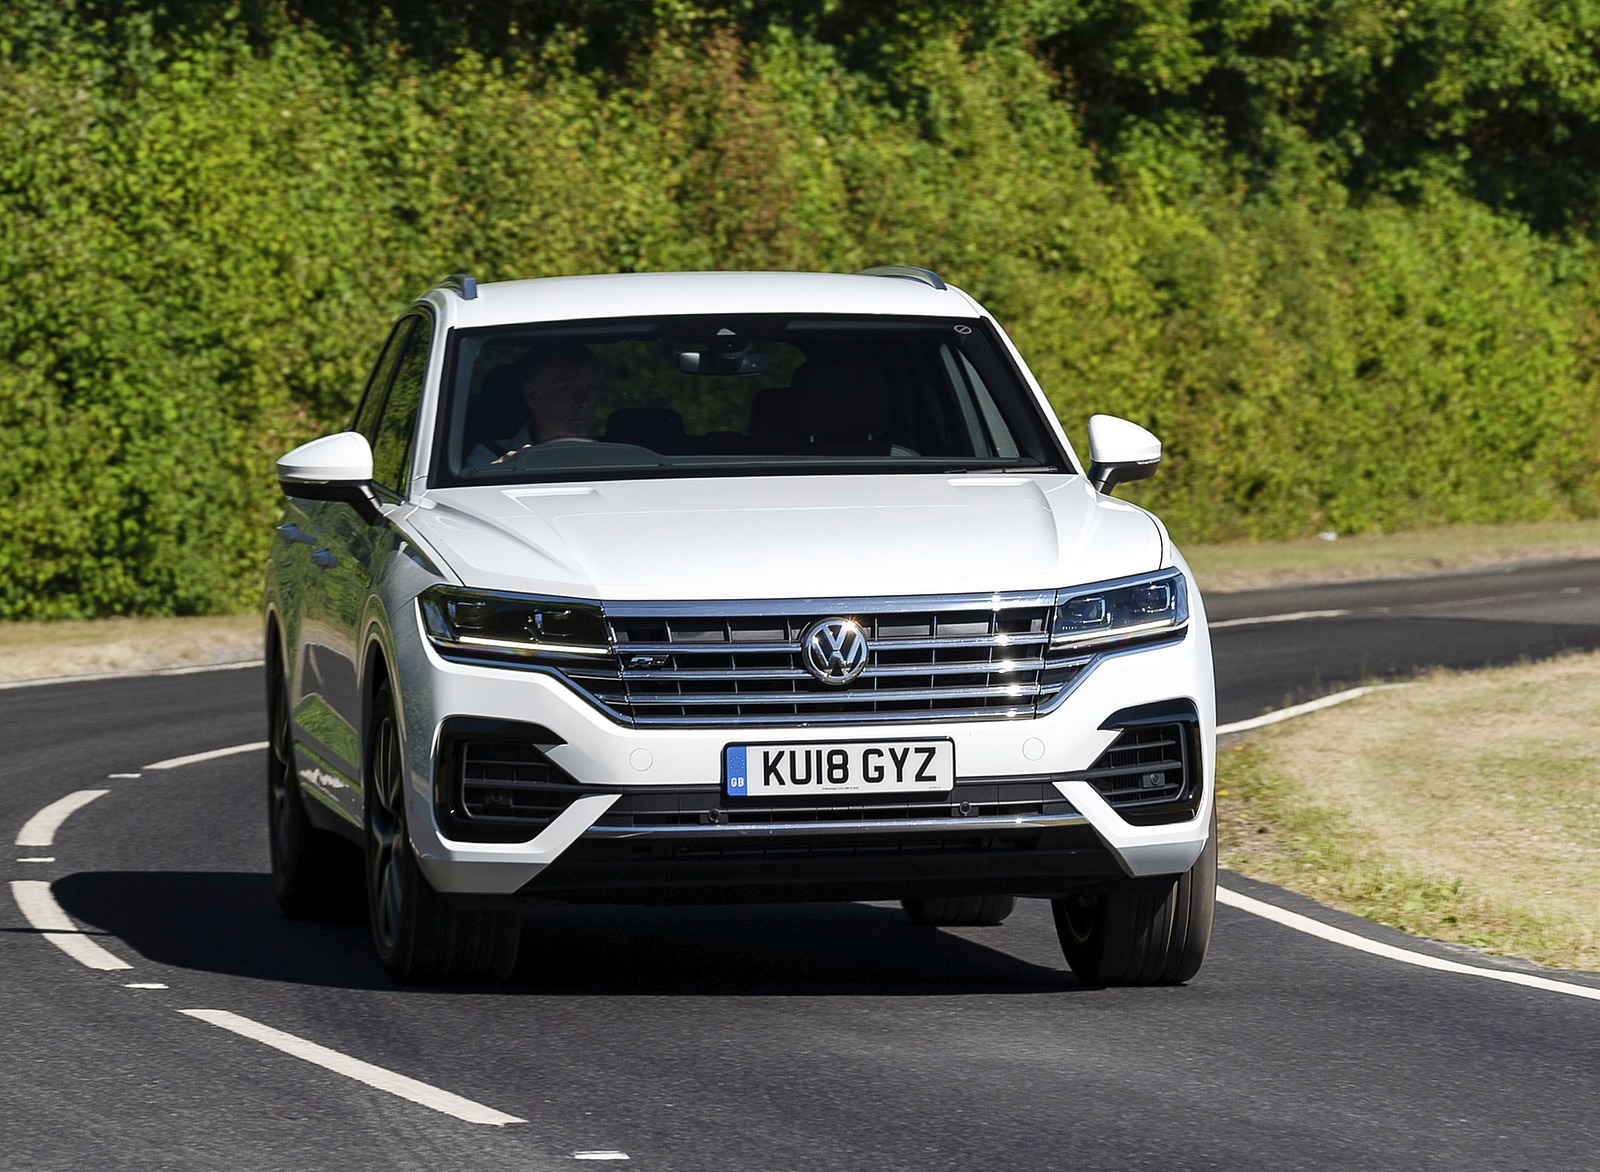 2019 Volkswagen Touareg V6 TDI R-Line (UK-Spec) Front Wallpapers #8 of 43